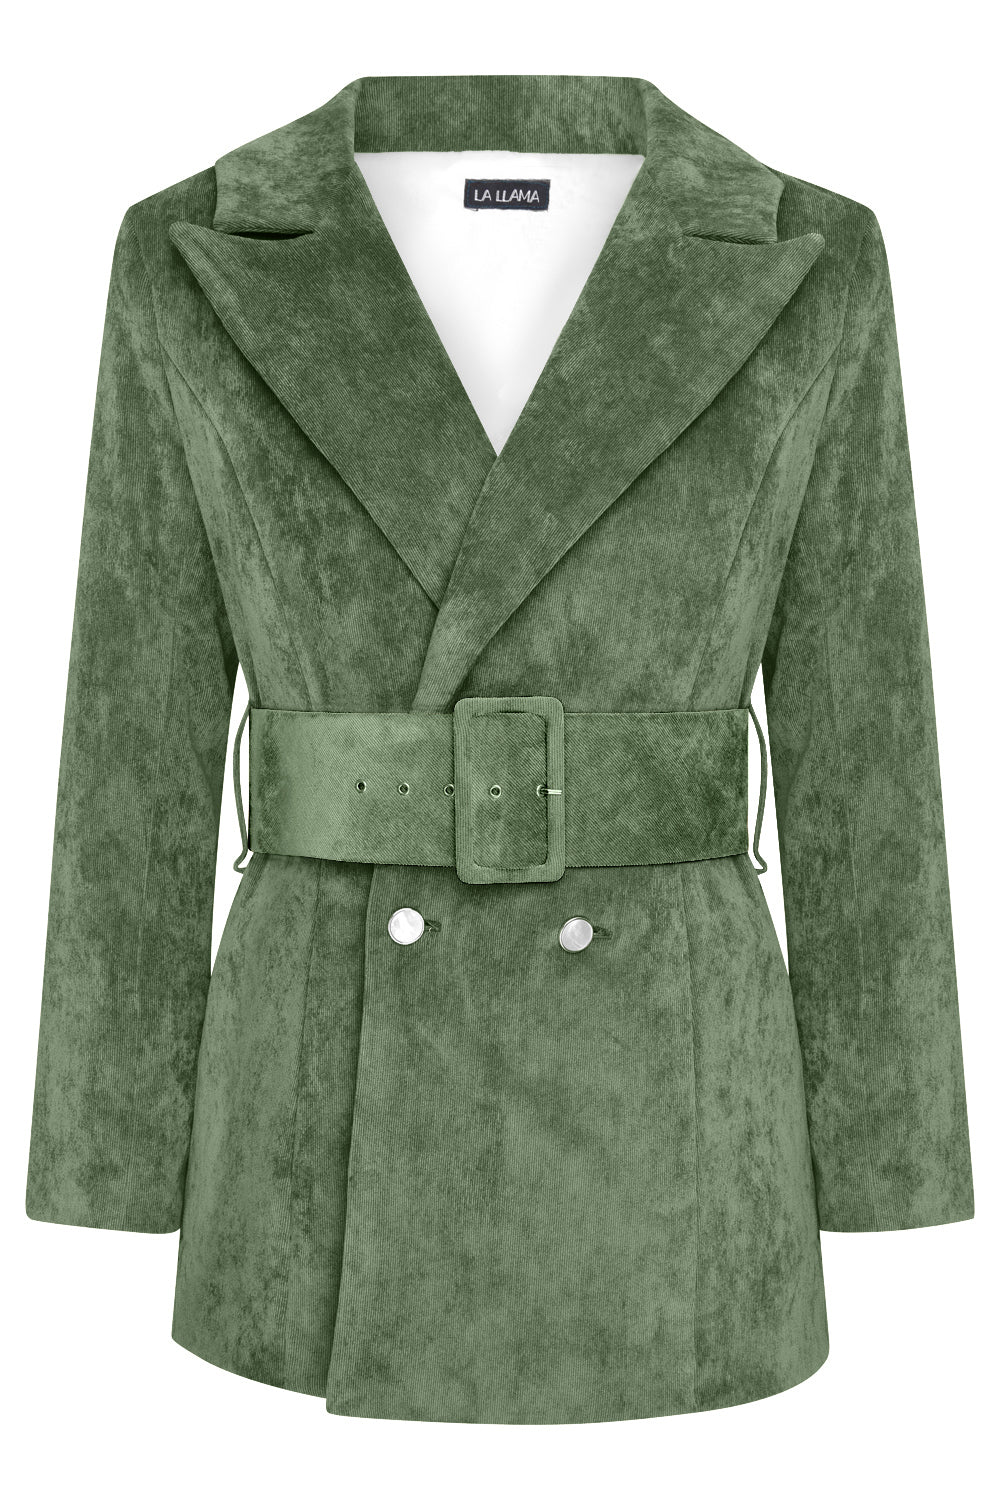 LUNA BLAZER -  BOTTLE GREEN